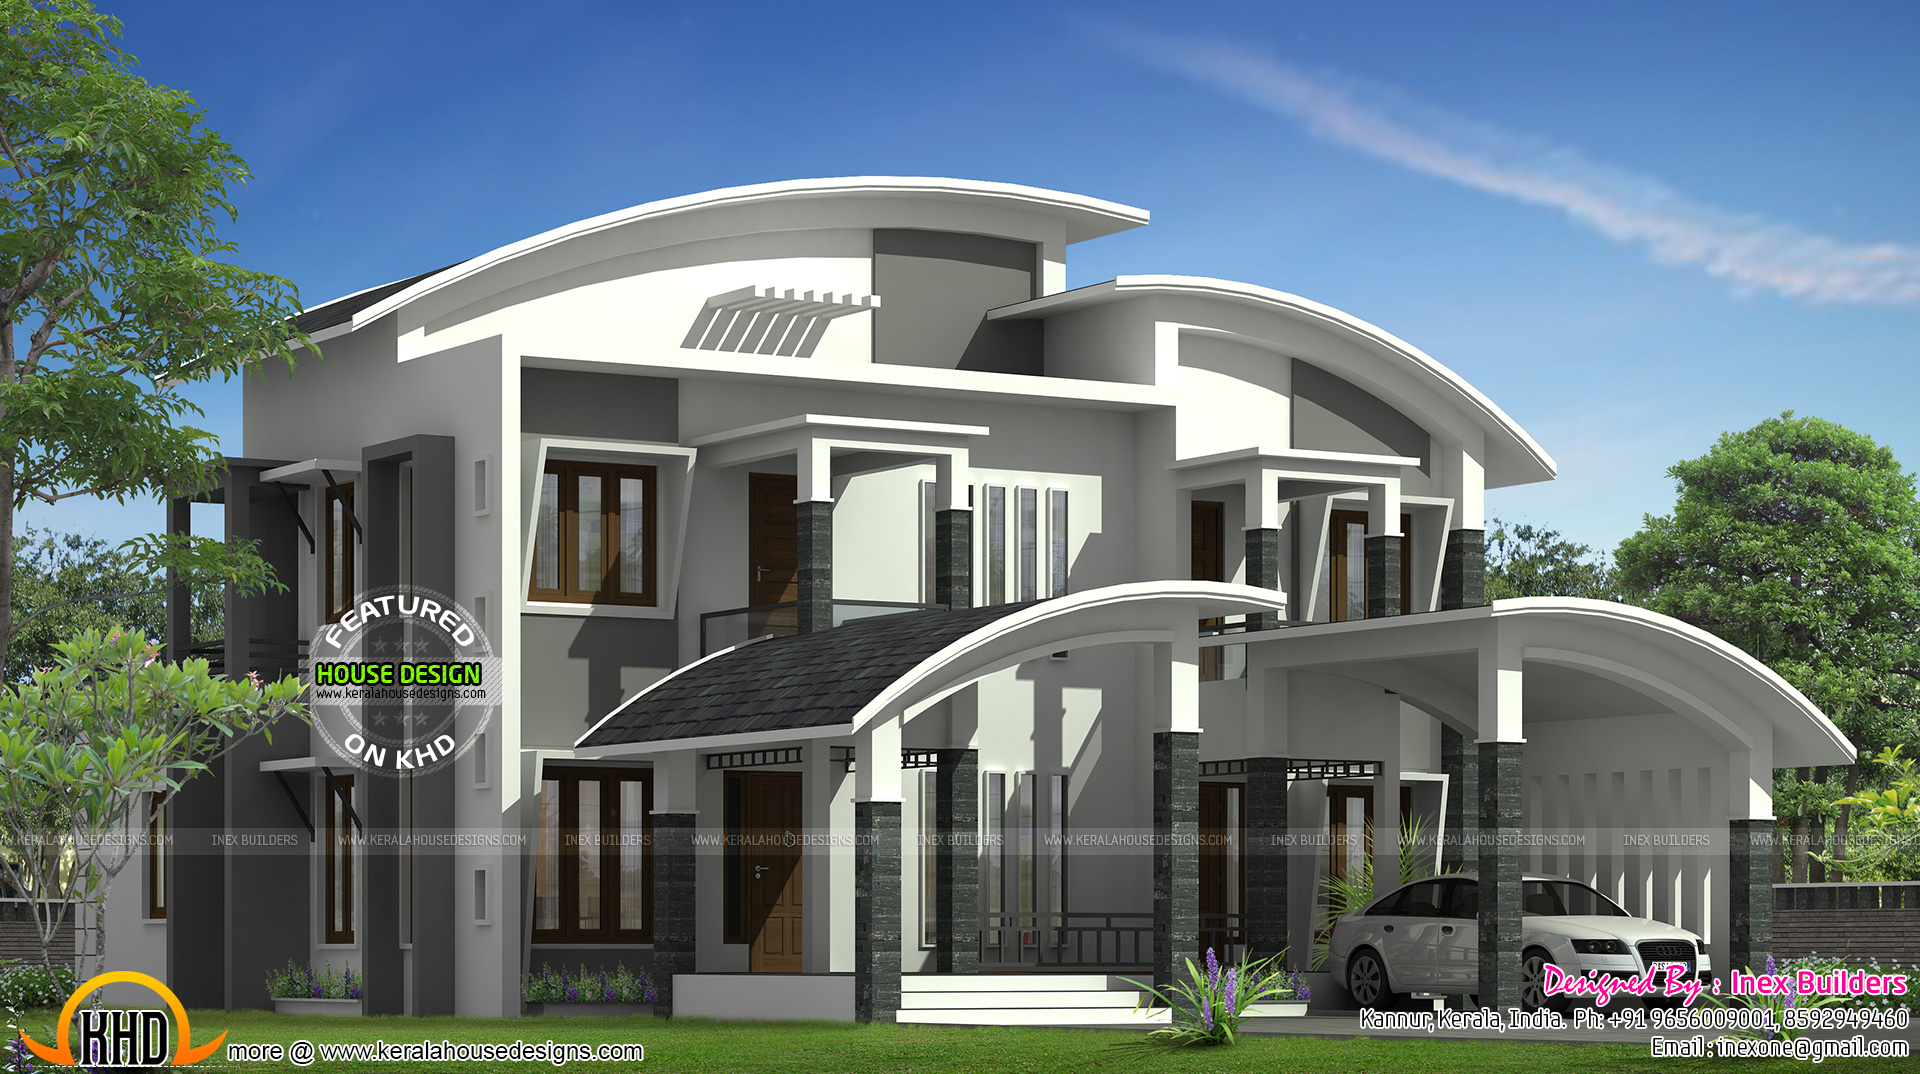 Curved roof house plan kerala home design and floor plans for Cupola on house